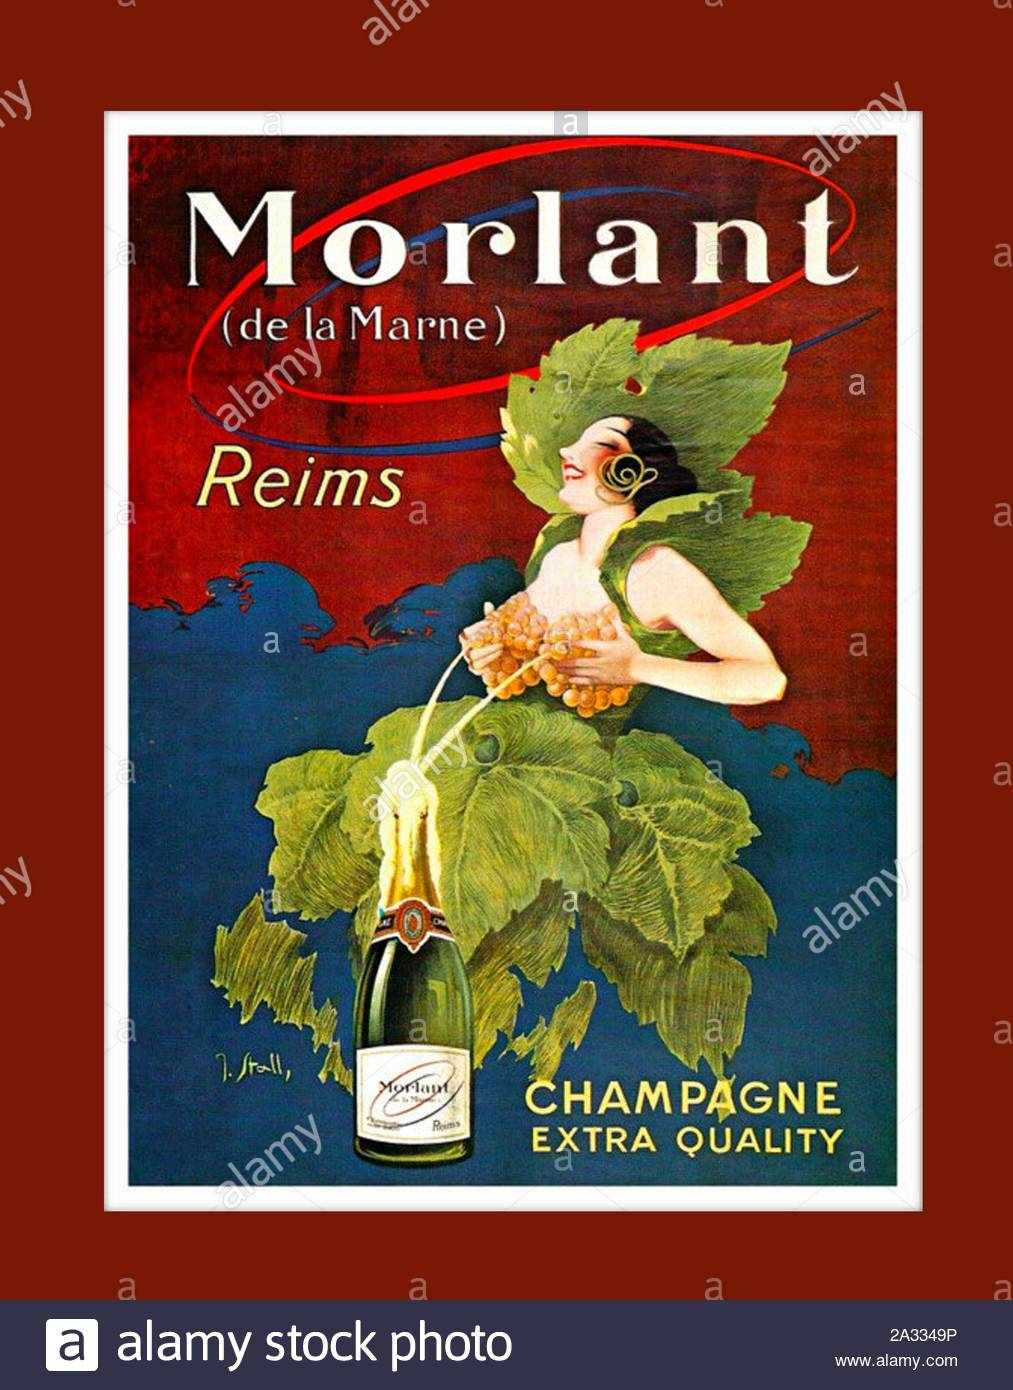 https www alamy com vintage alcohol poster french champagne morlant image328910226 html